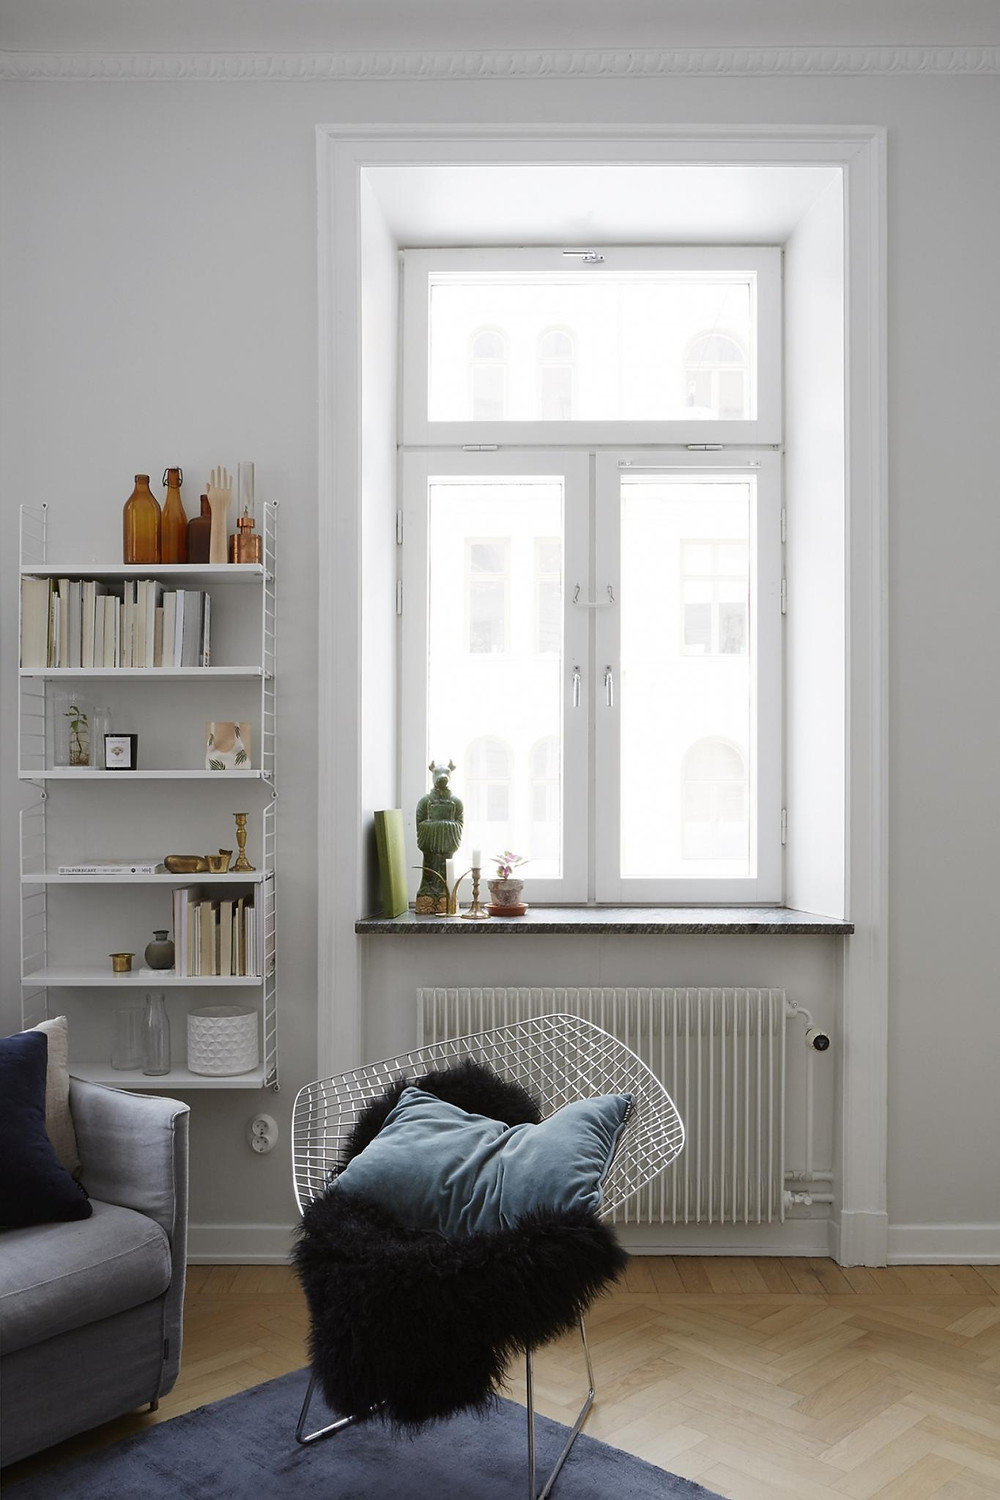 Scandinavian interior design living room with grey sofa and lots of cushions, indigo blue and white walls String shelving unit and apothecary bottles